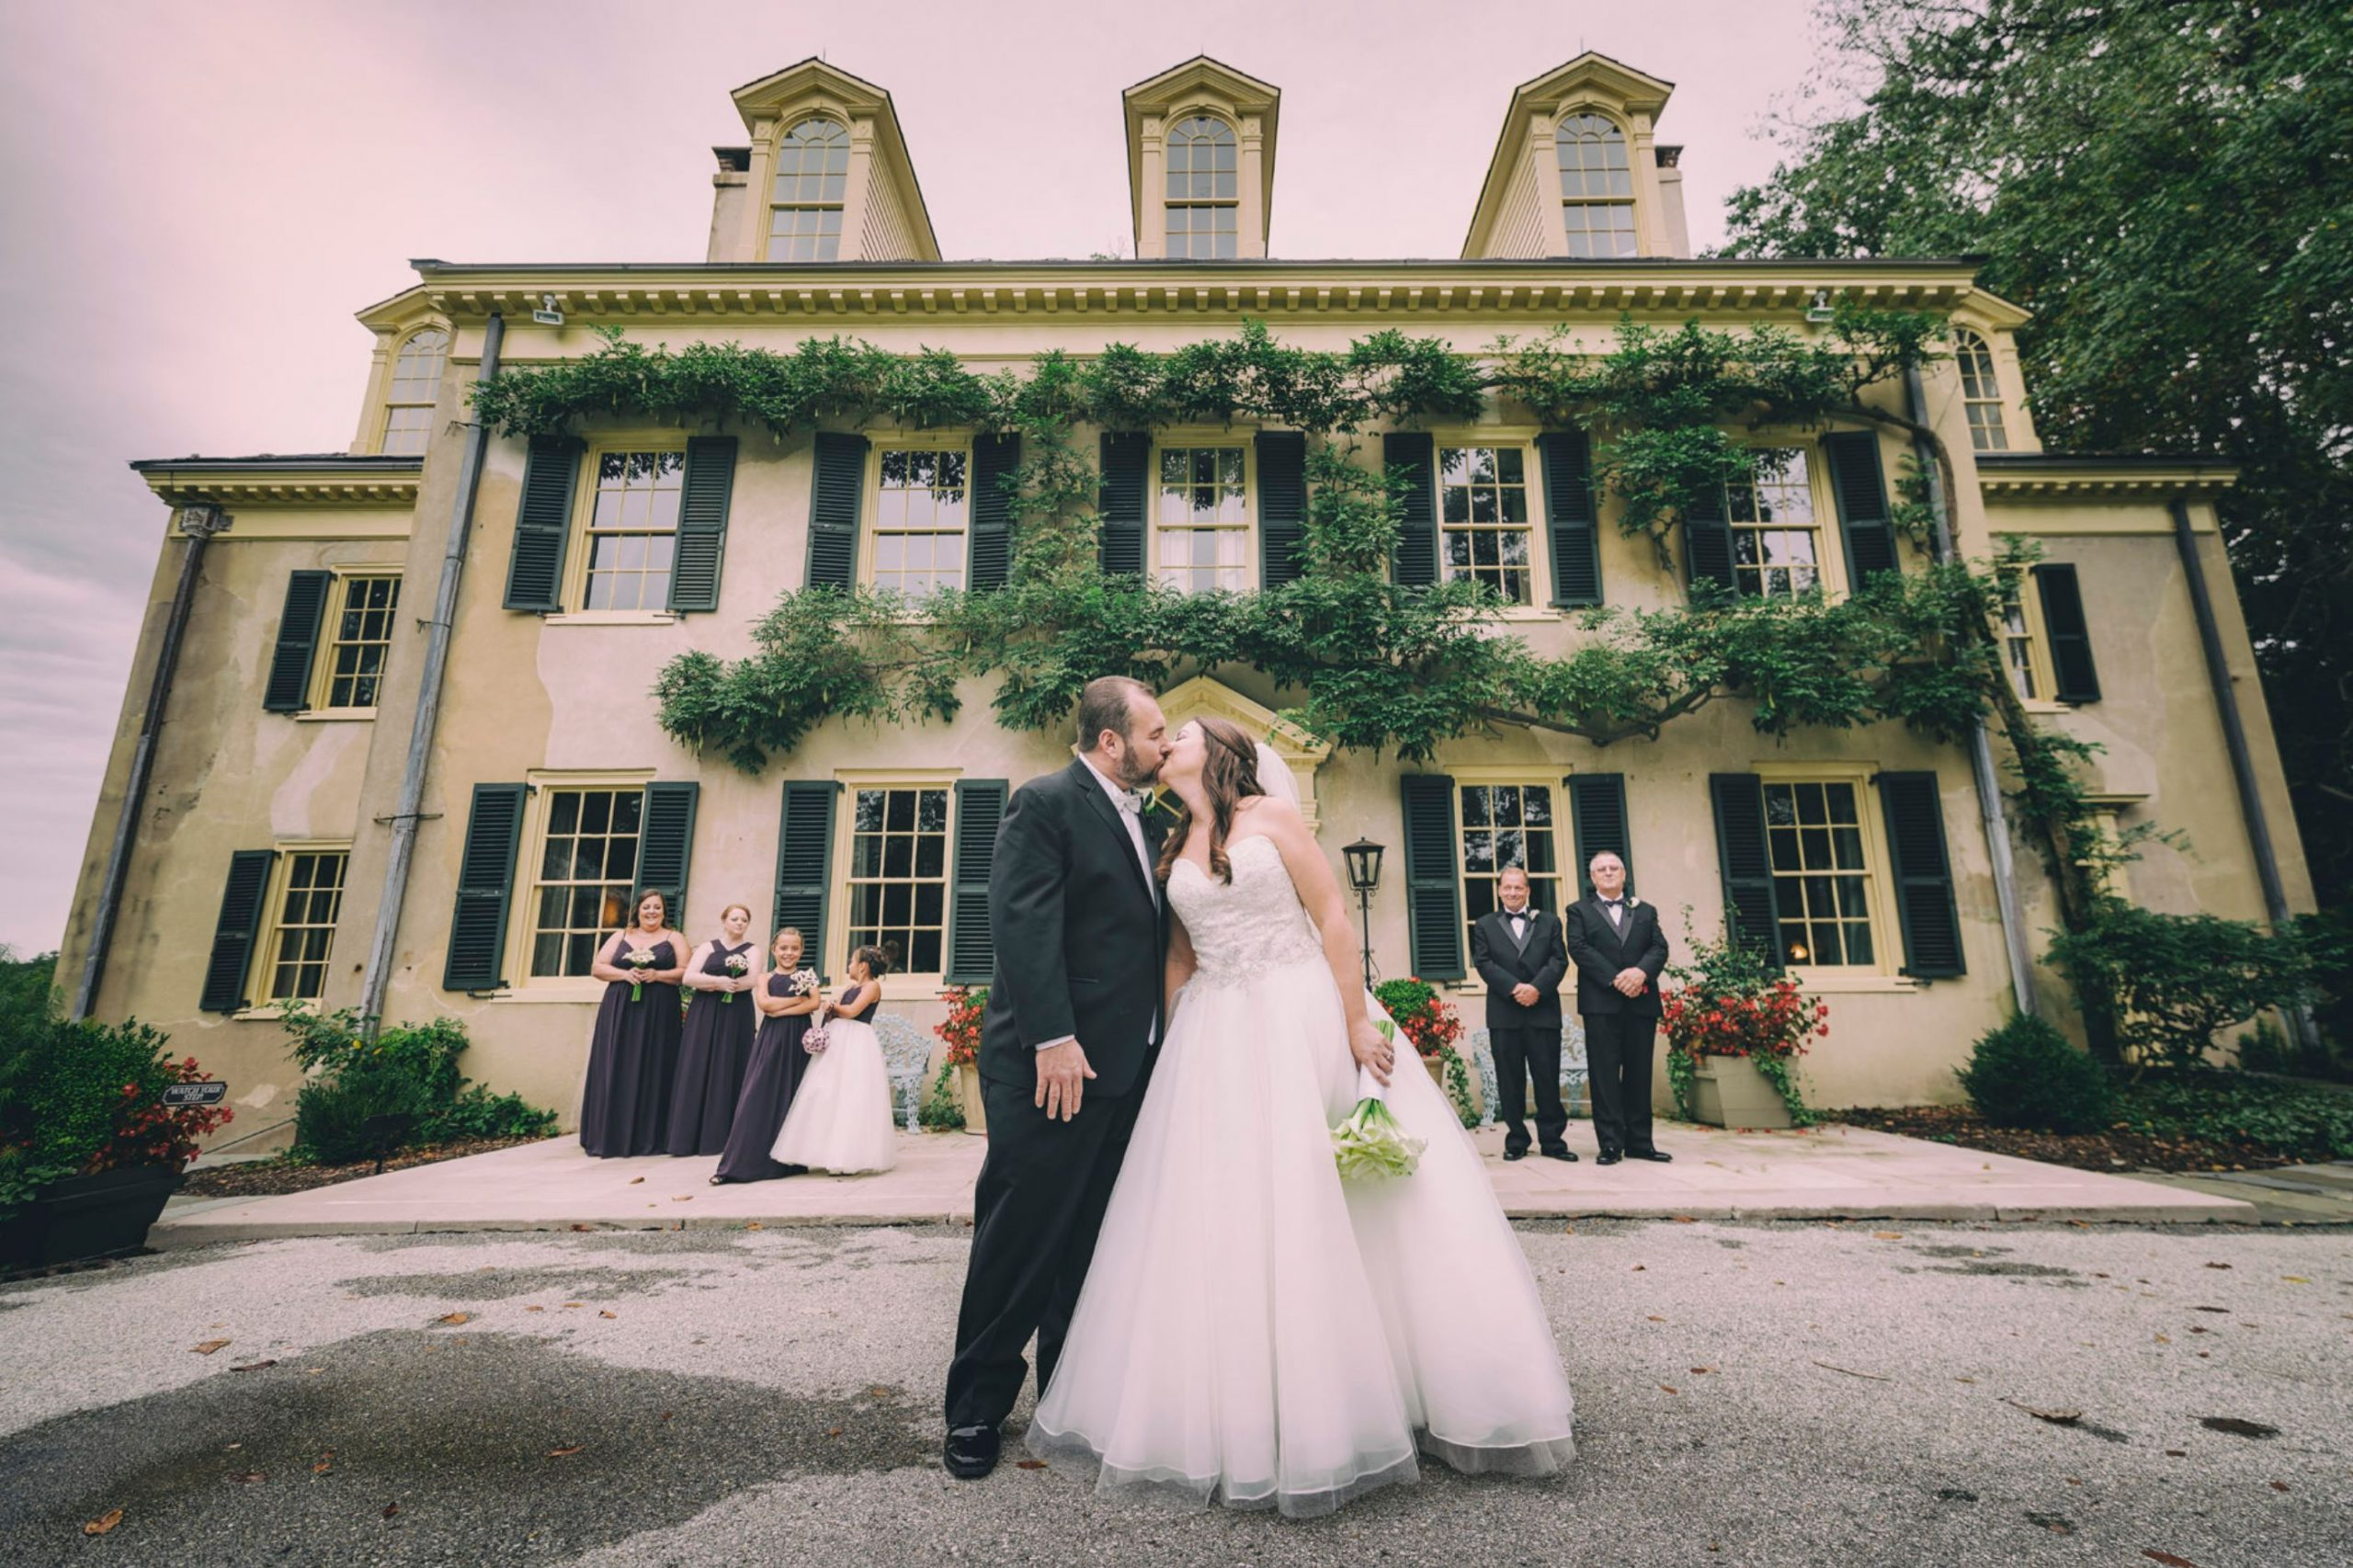 A wedding couple is kissing each other in front of a house.